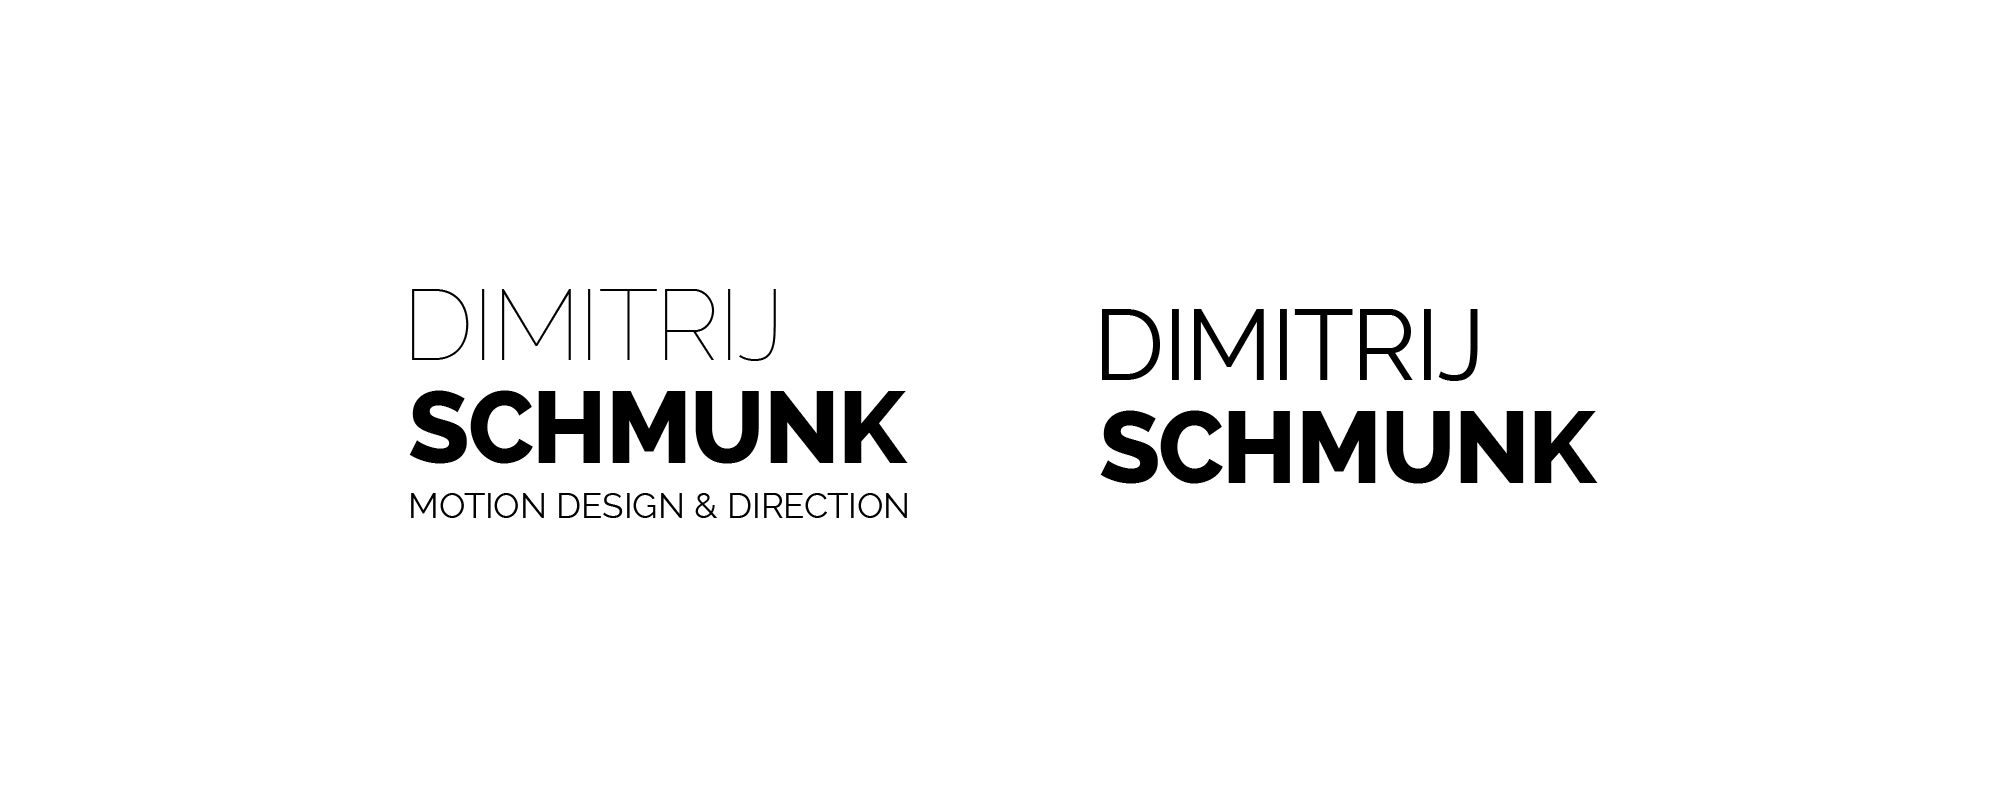 Logo Dimitrij Schmunk - Motion Design & Direction - Wortmarke I